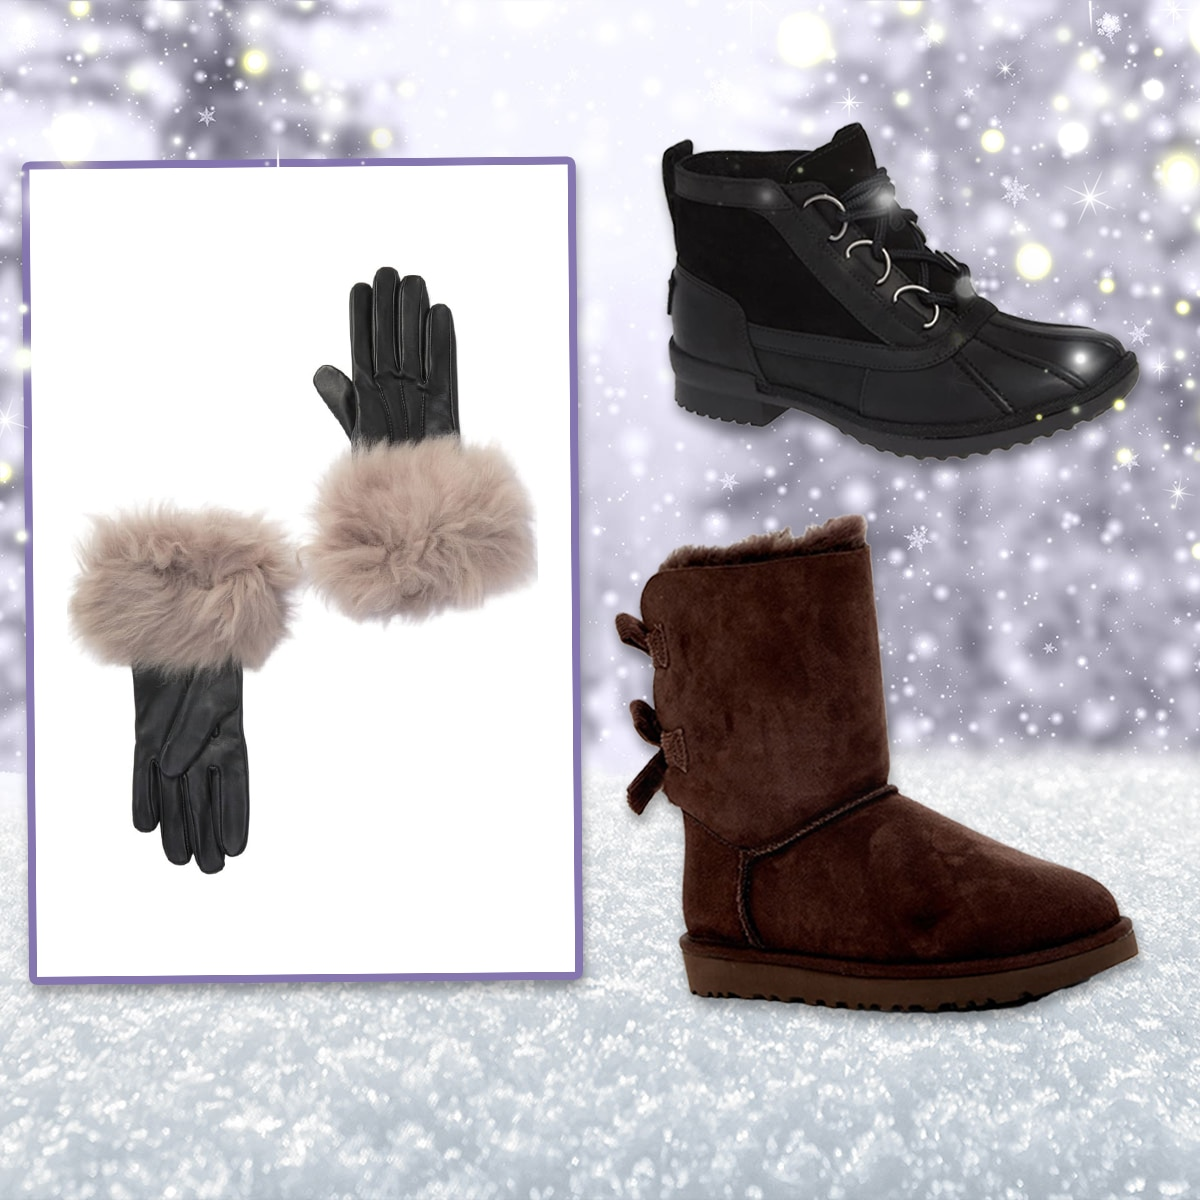 Ugg Flash Sale: Save Up to 70% Now! E